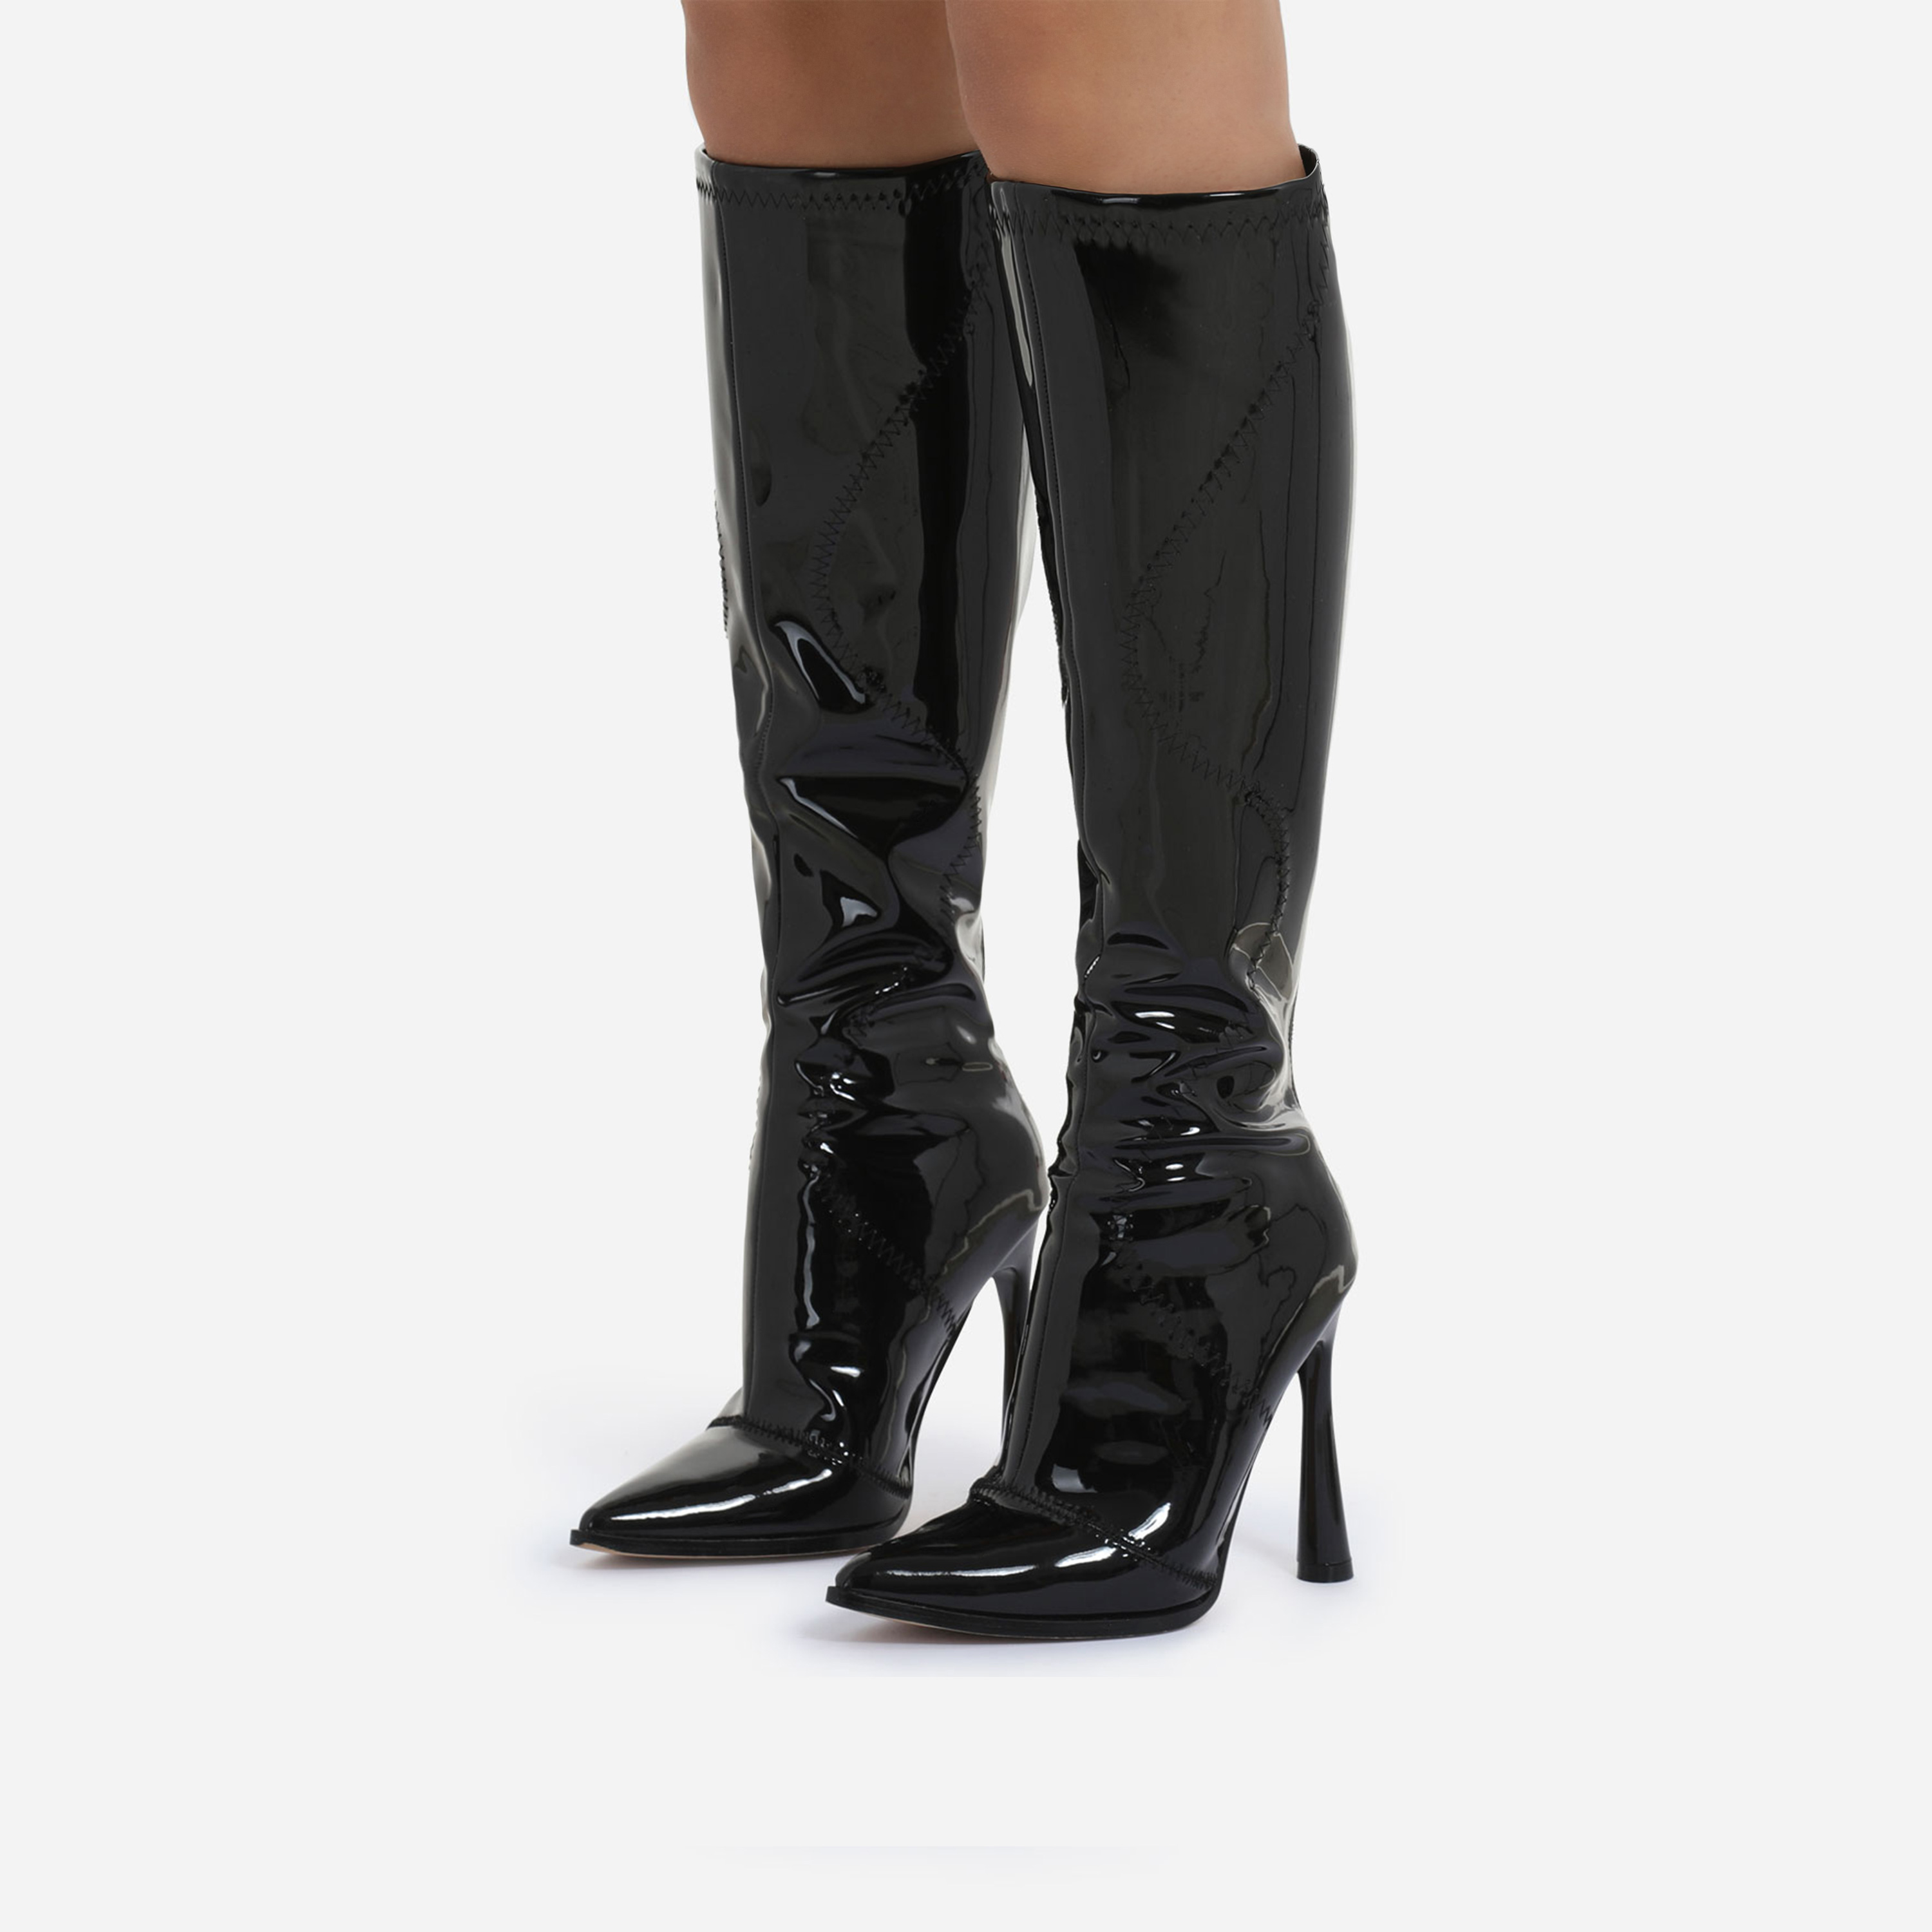 Austin Curved Heel Knee High Long Boot In Black Patent